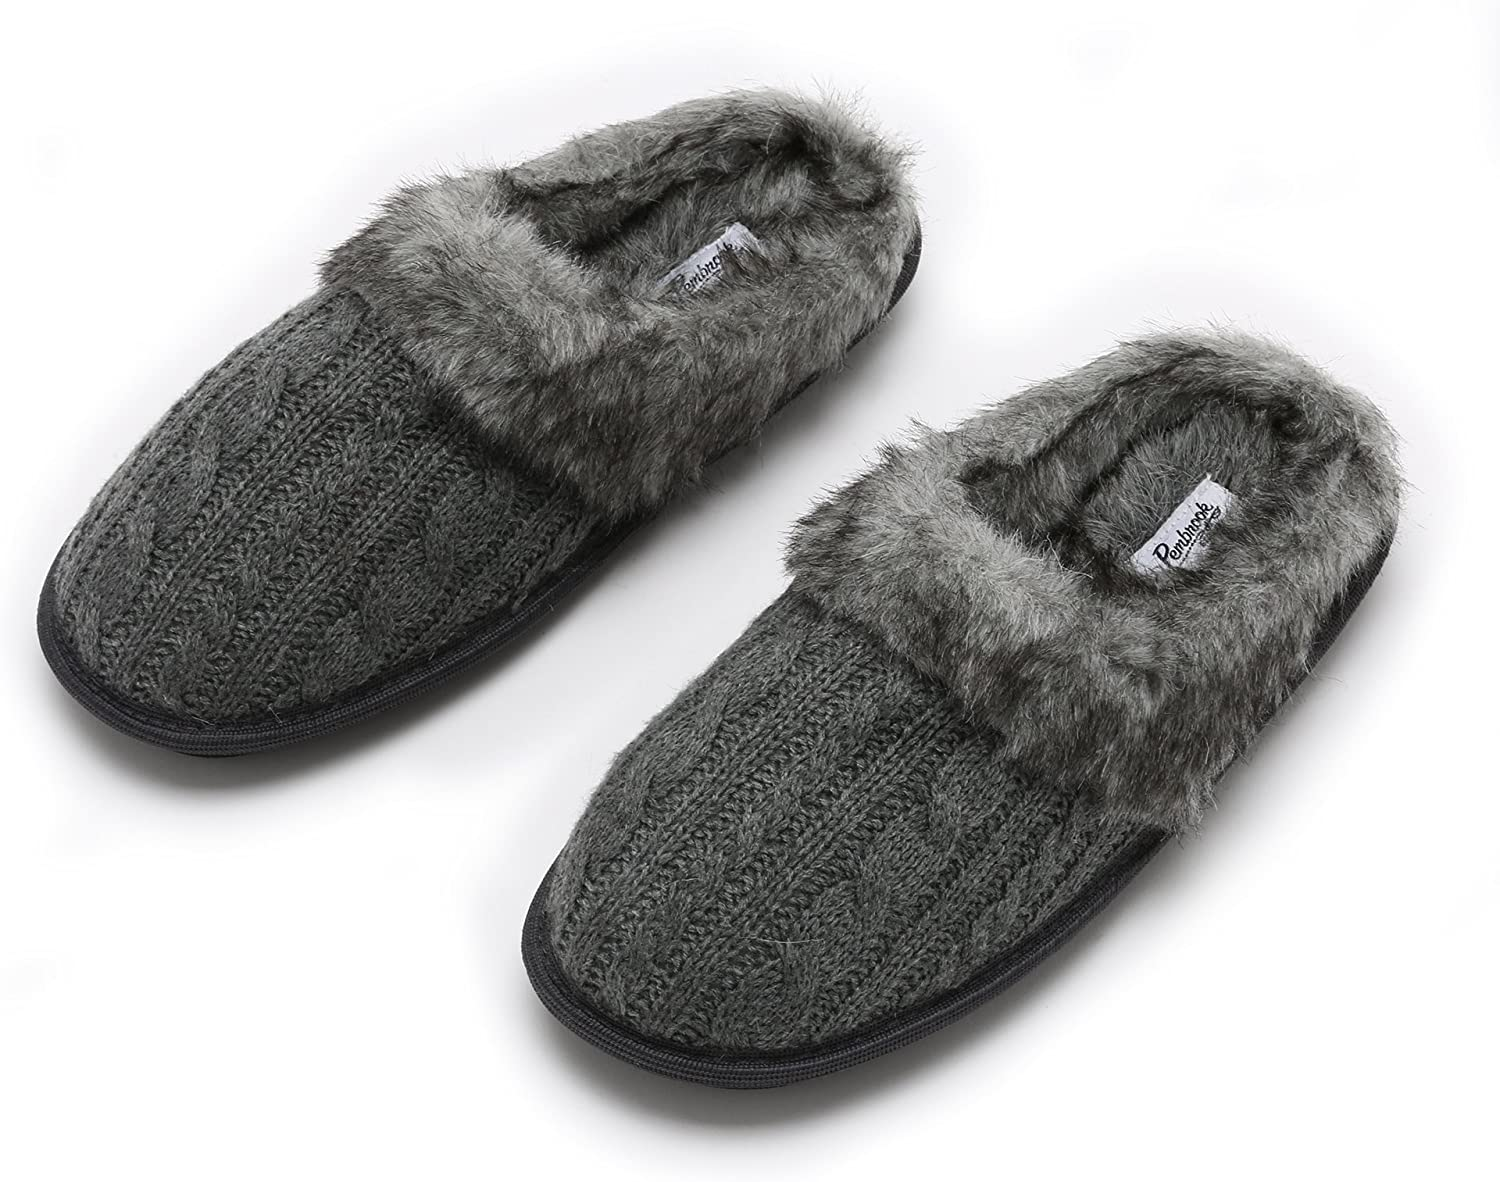 Pembrook Ladies Faux Fur + Cable Knit Slippers - Comfortable Memory Foam Indoor and Outdoor Non-Skid Sole